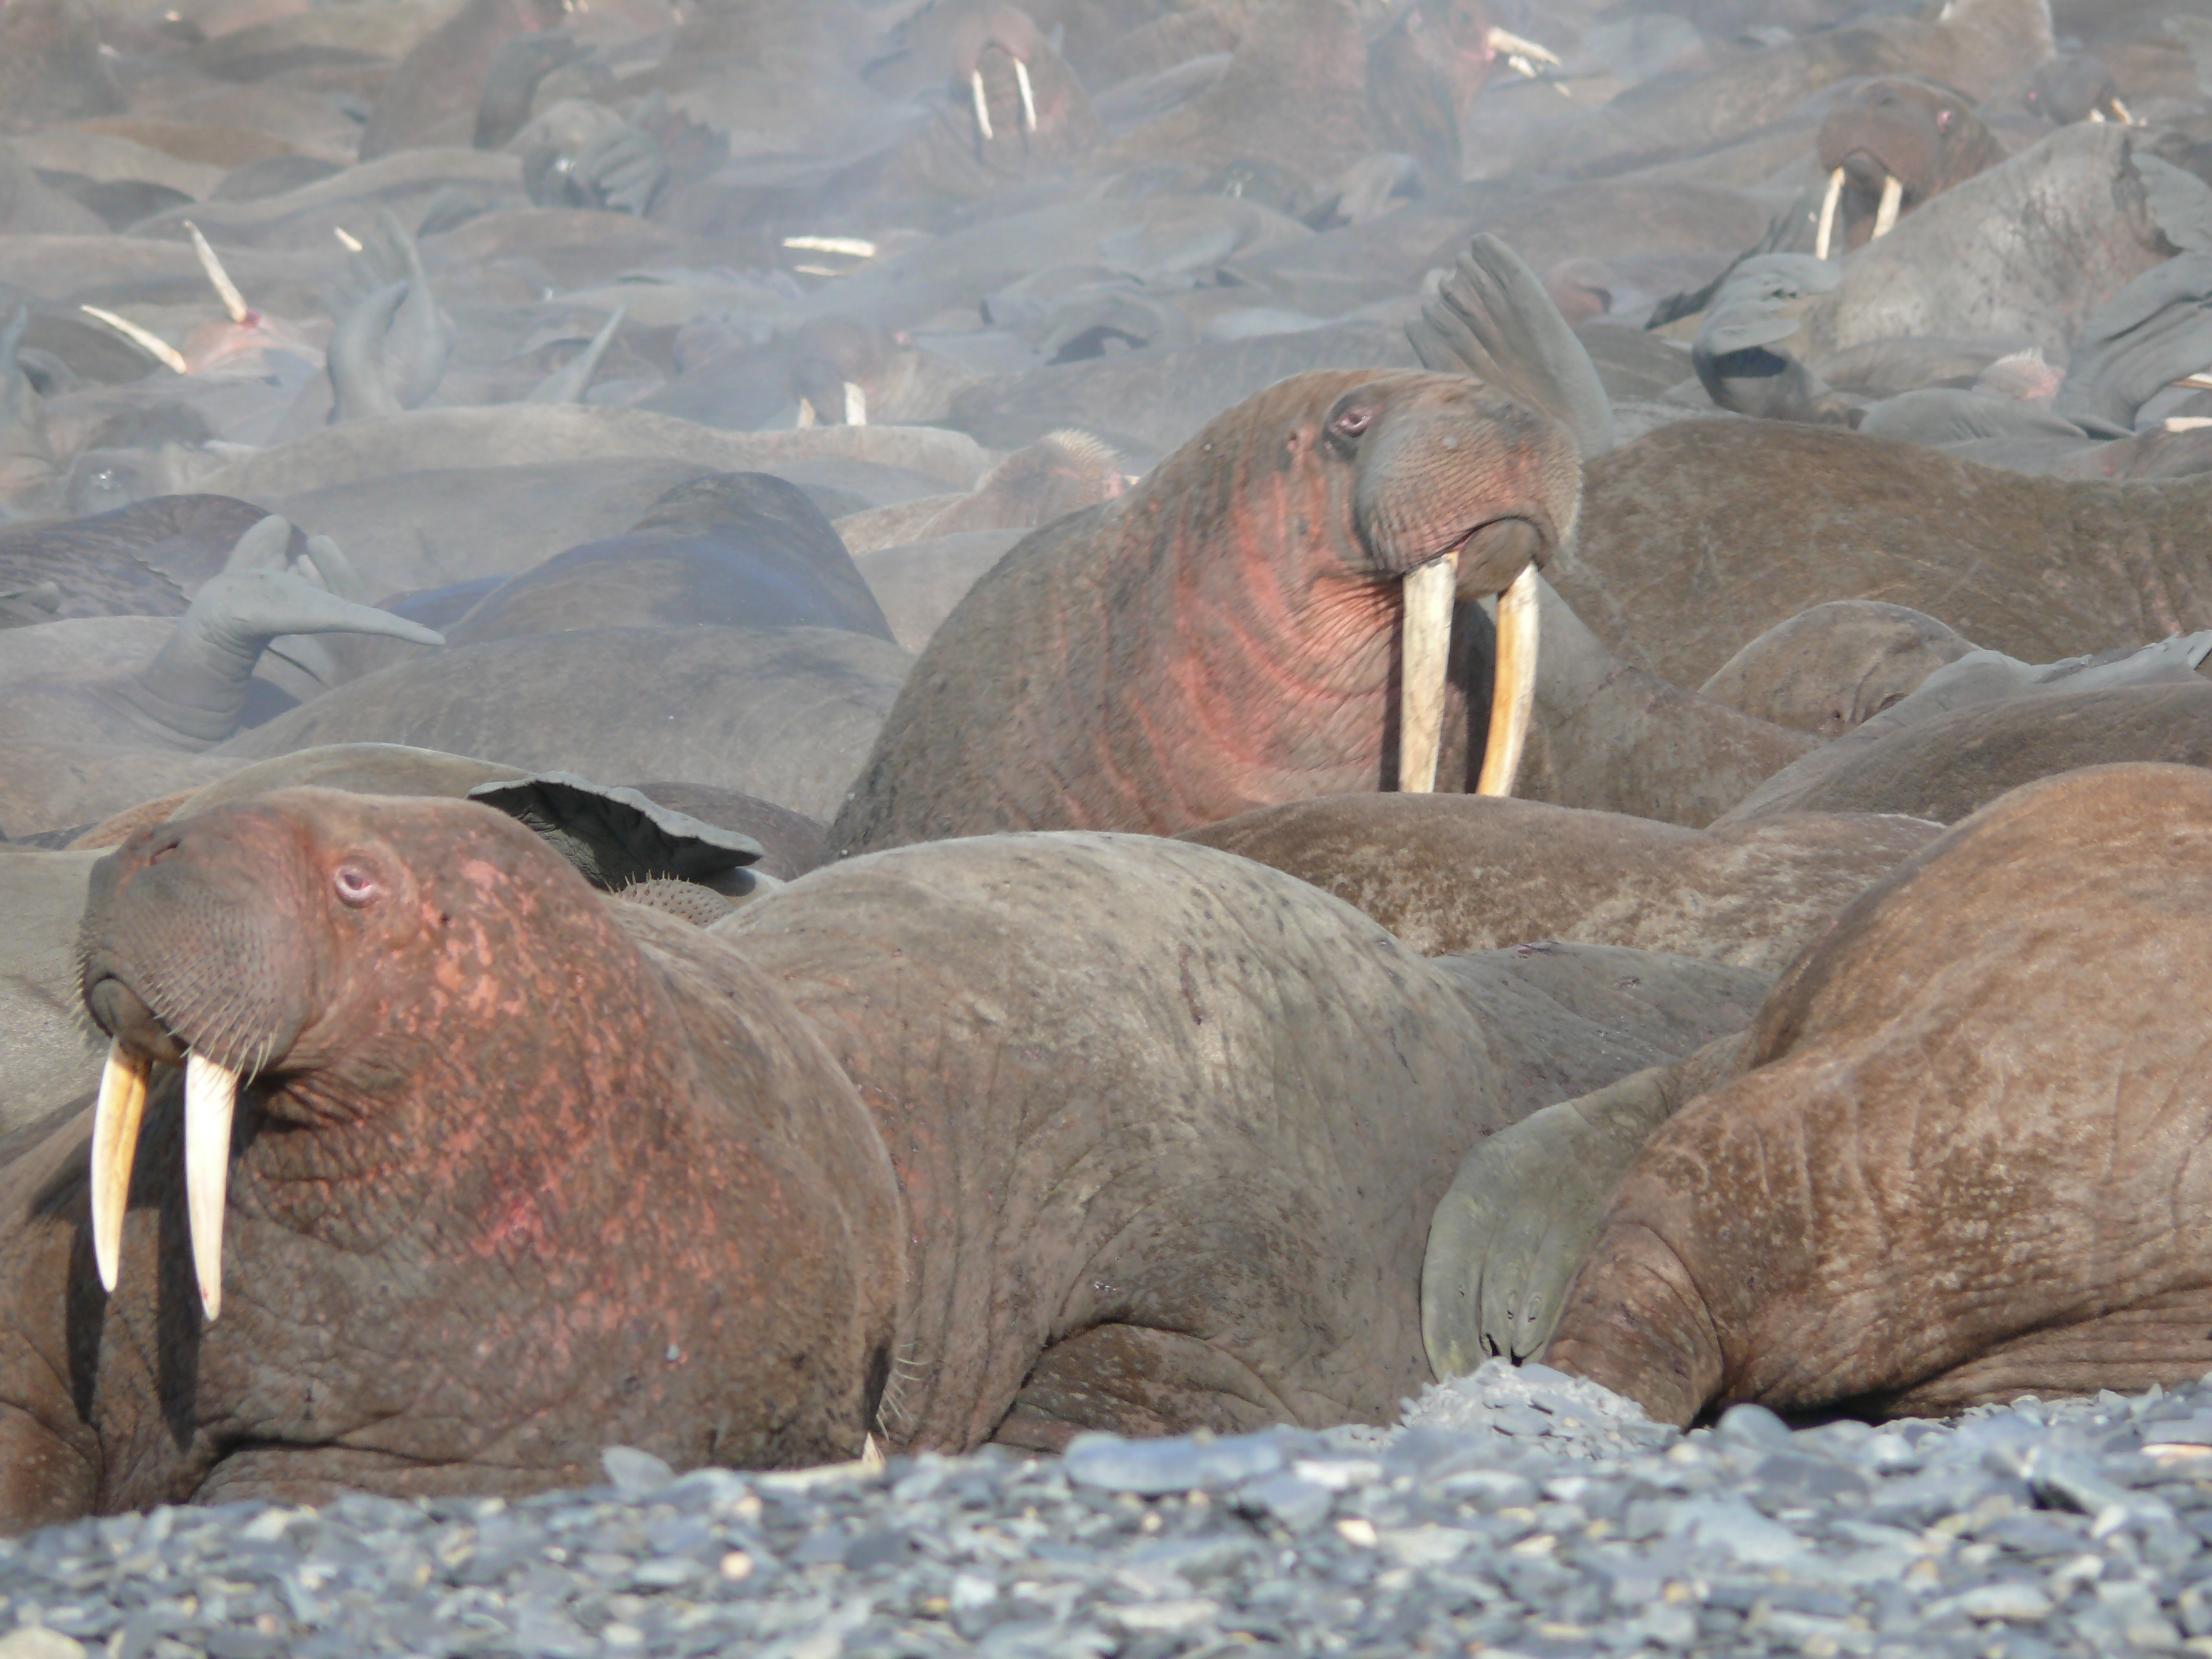 Walruses crammed together on the Chutotka coast in far-eastern Russia